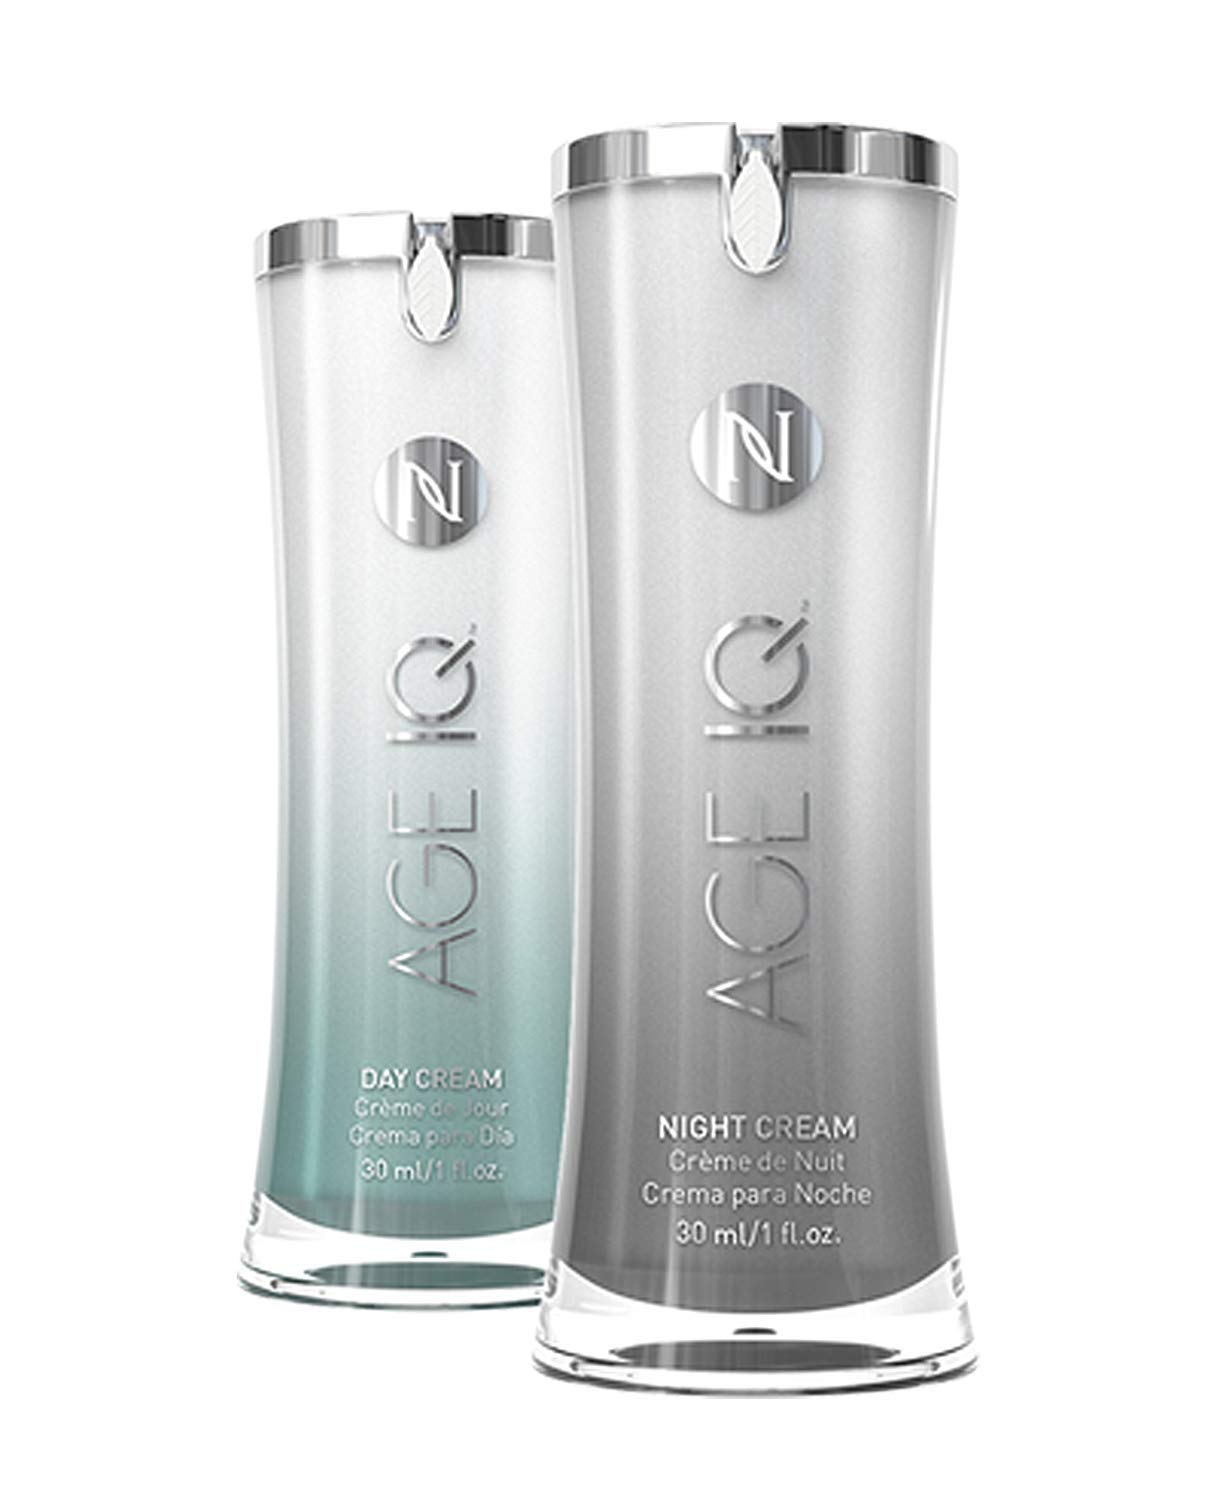 Nerium Age IQ Day and Night combo 1oz/30ml